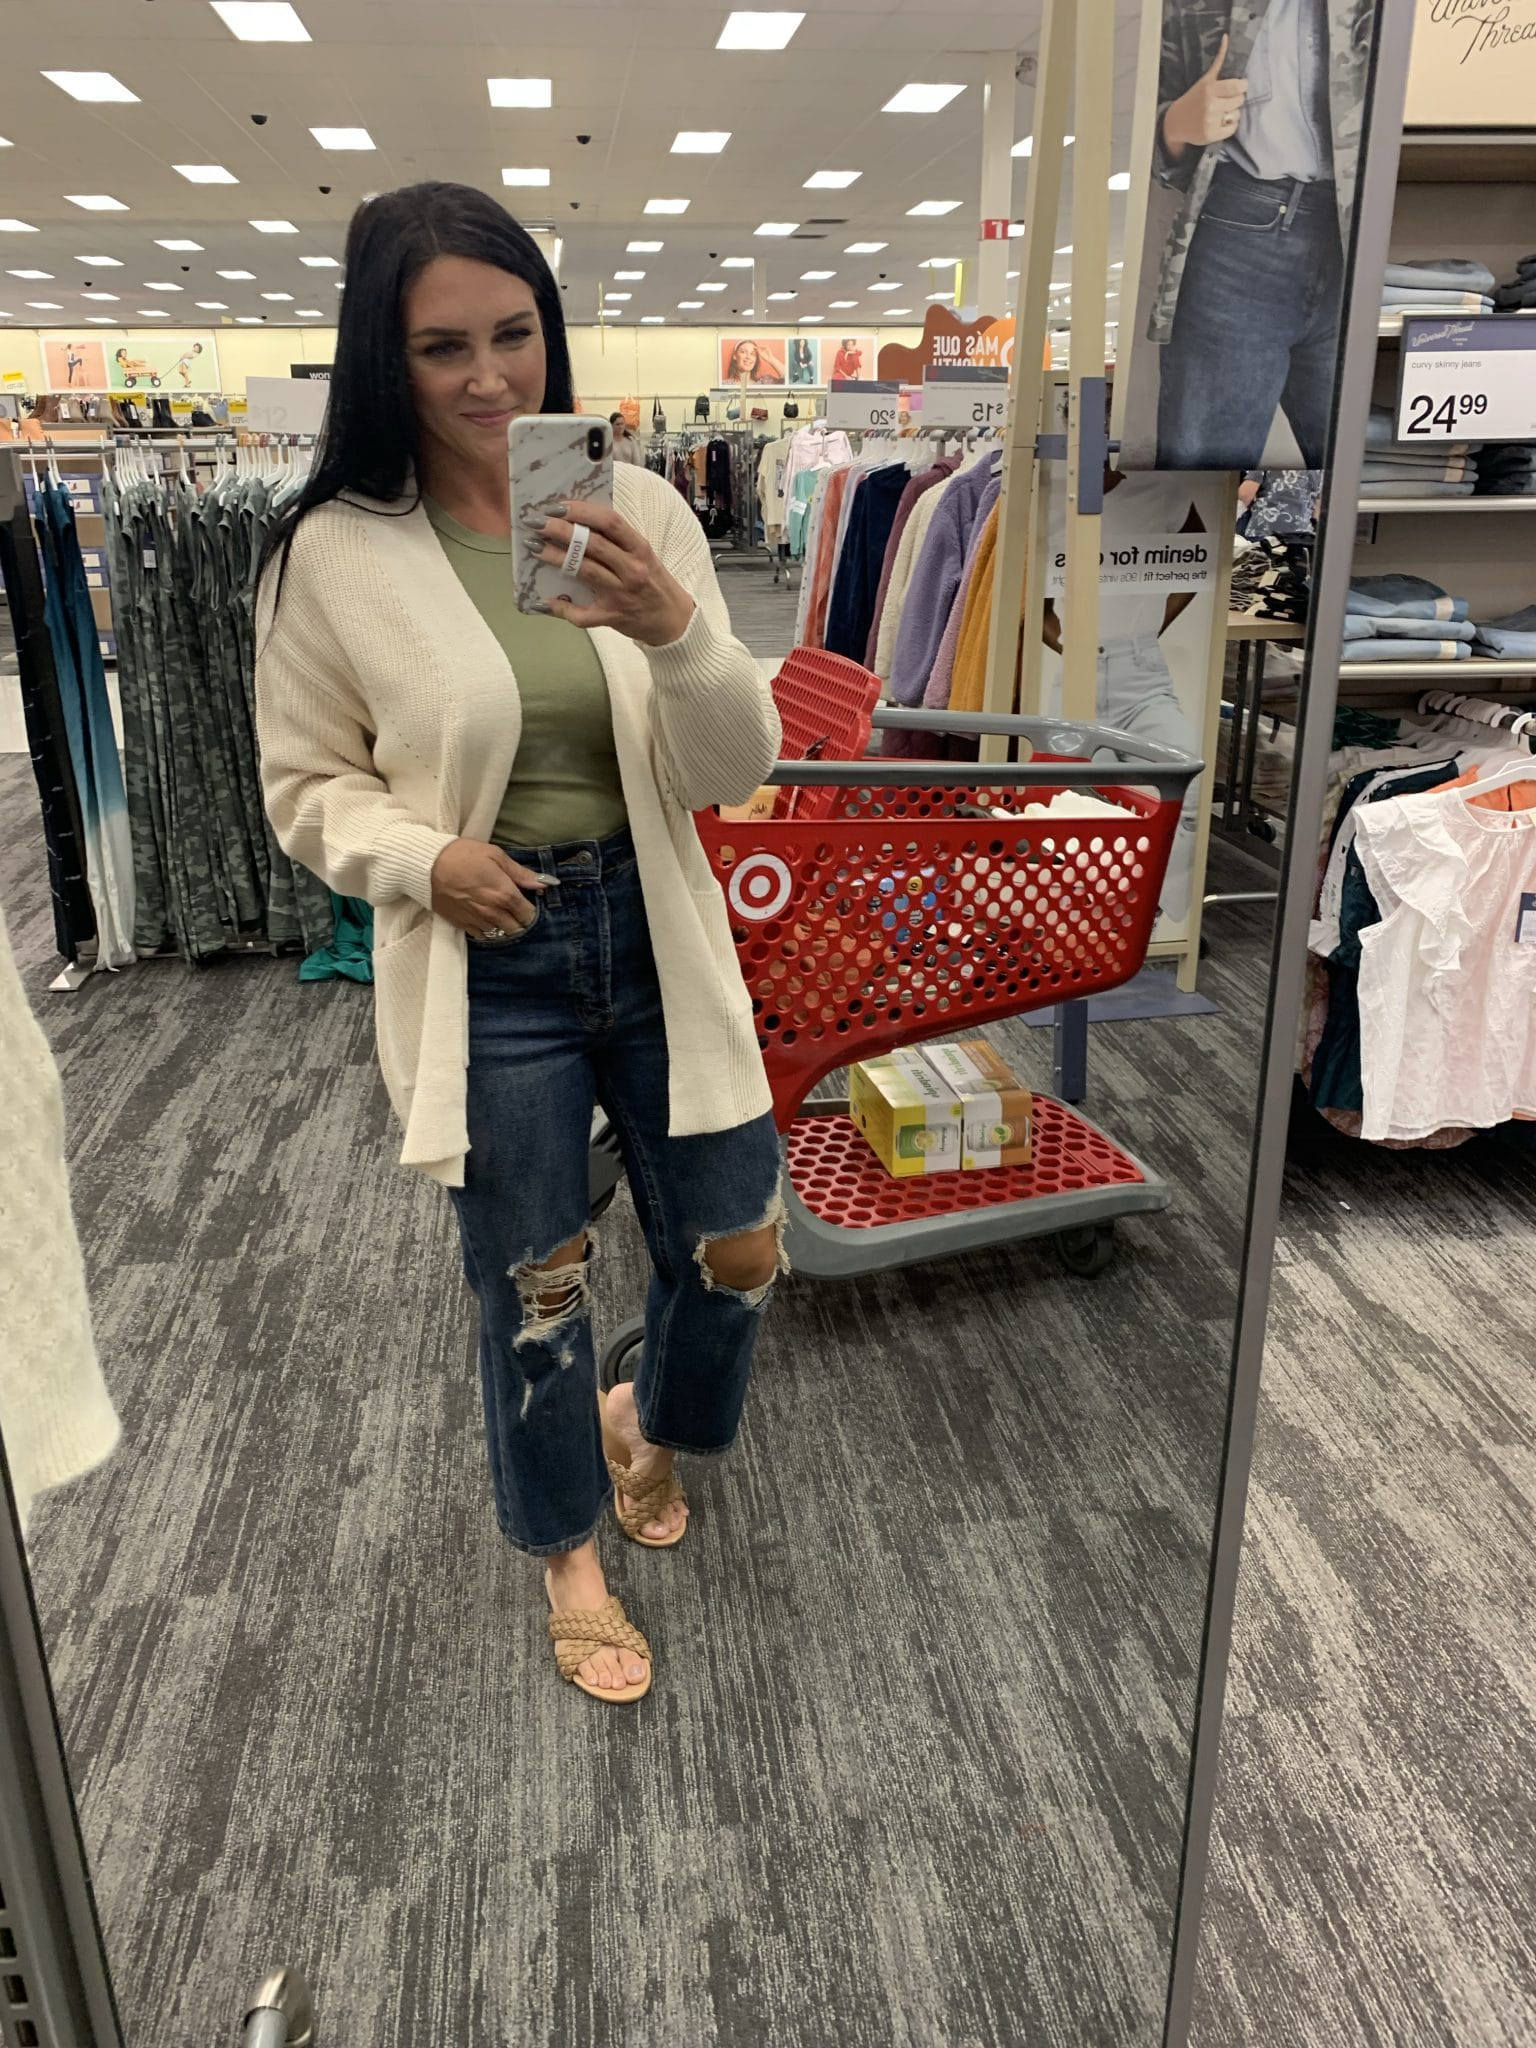 Boyfriend jeans, comfortable cardigan, Target Fall Haul, Best Target finds, Stilettos and Diapers